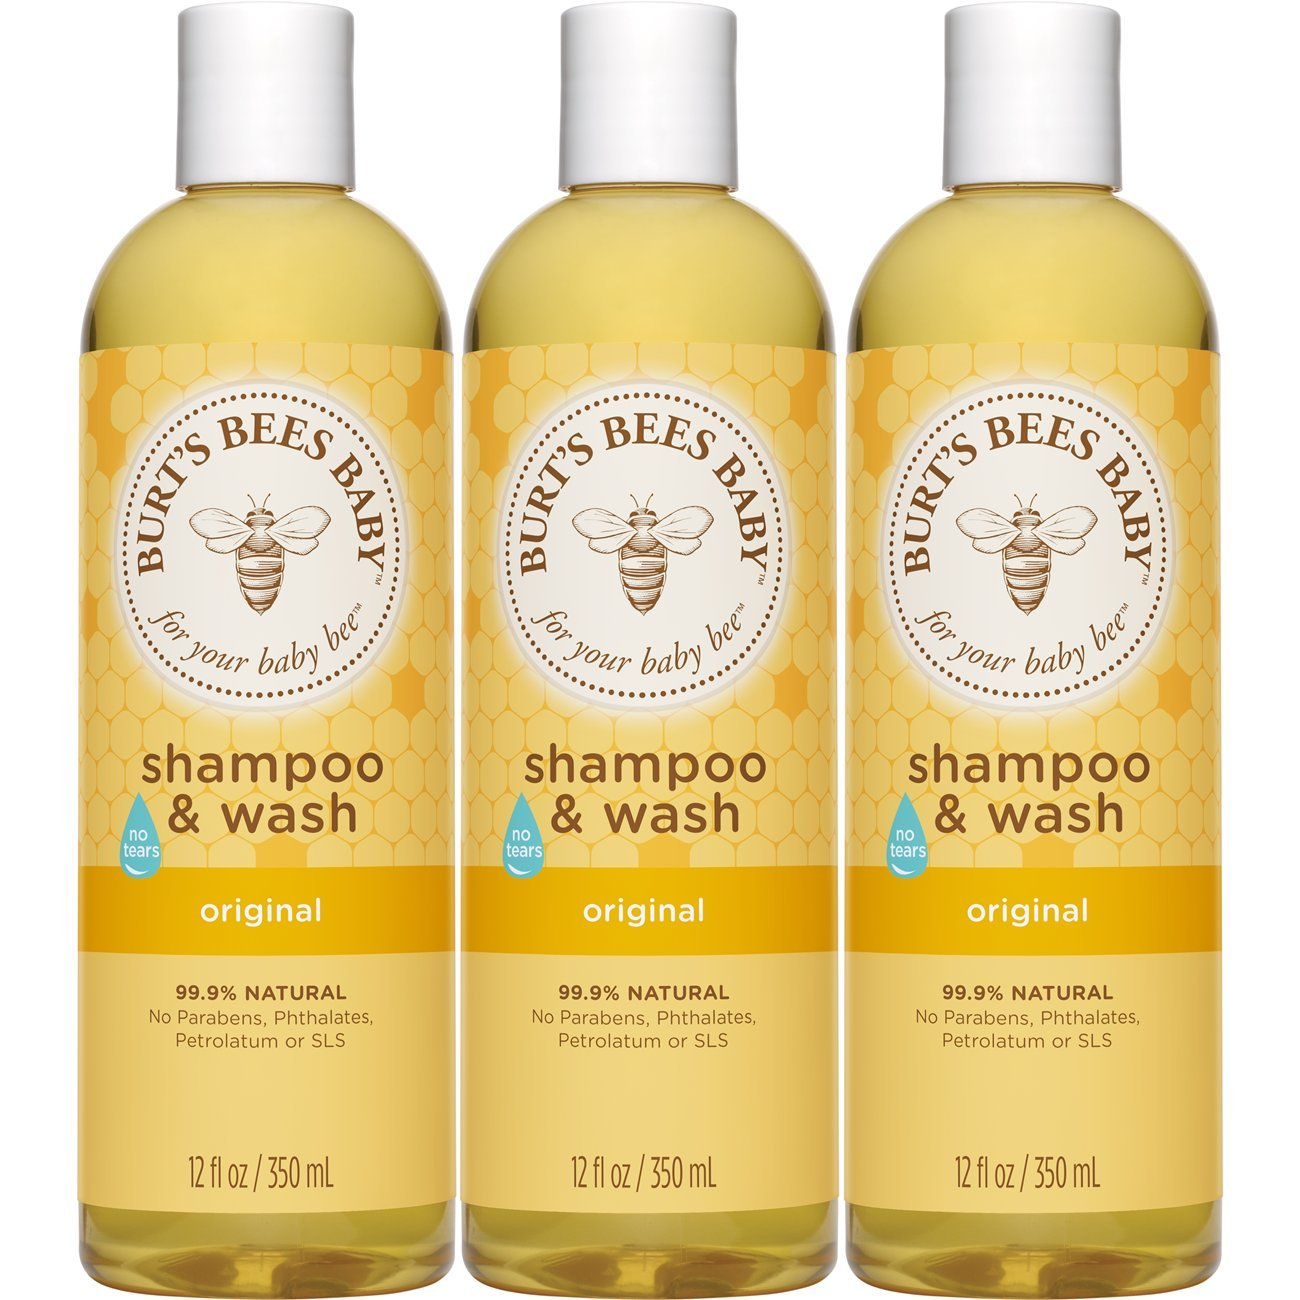 Burt's Bees Baby Shampoo & Wash, Original, 12 Ounces (Pack of 3) (Packaging May Vary) Burt's Bees